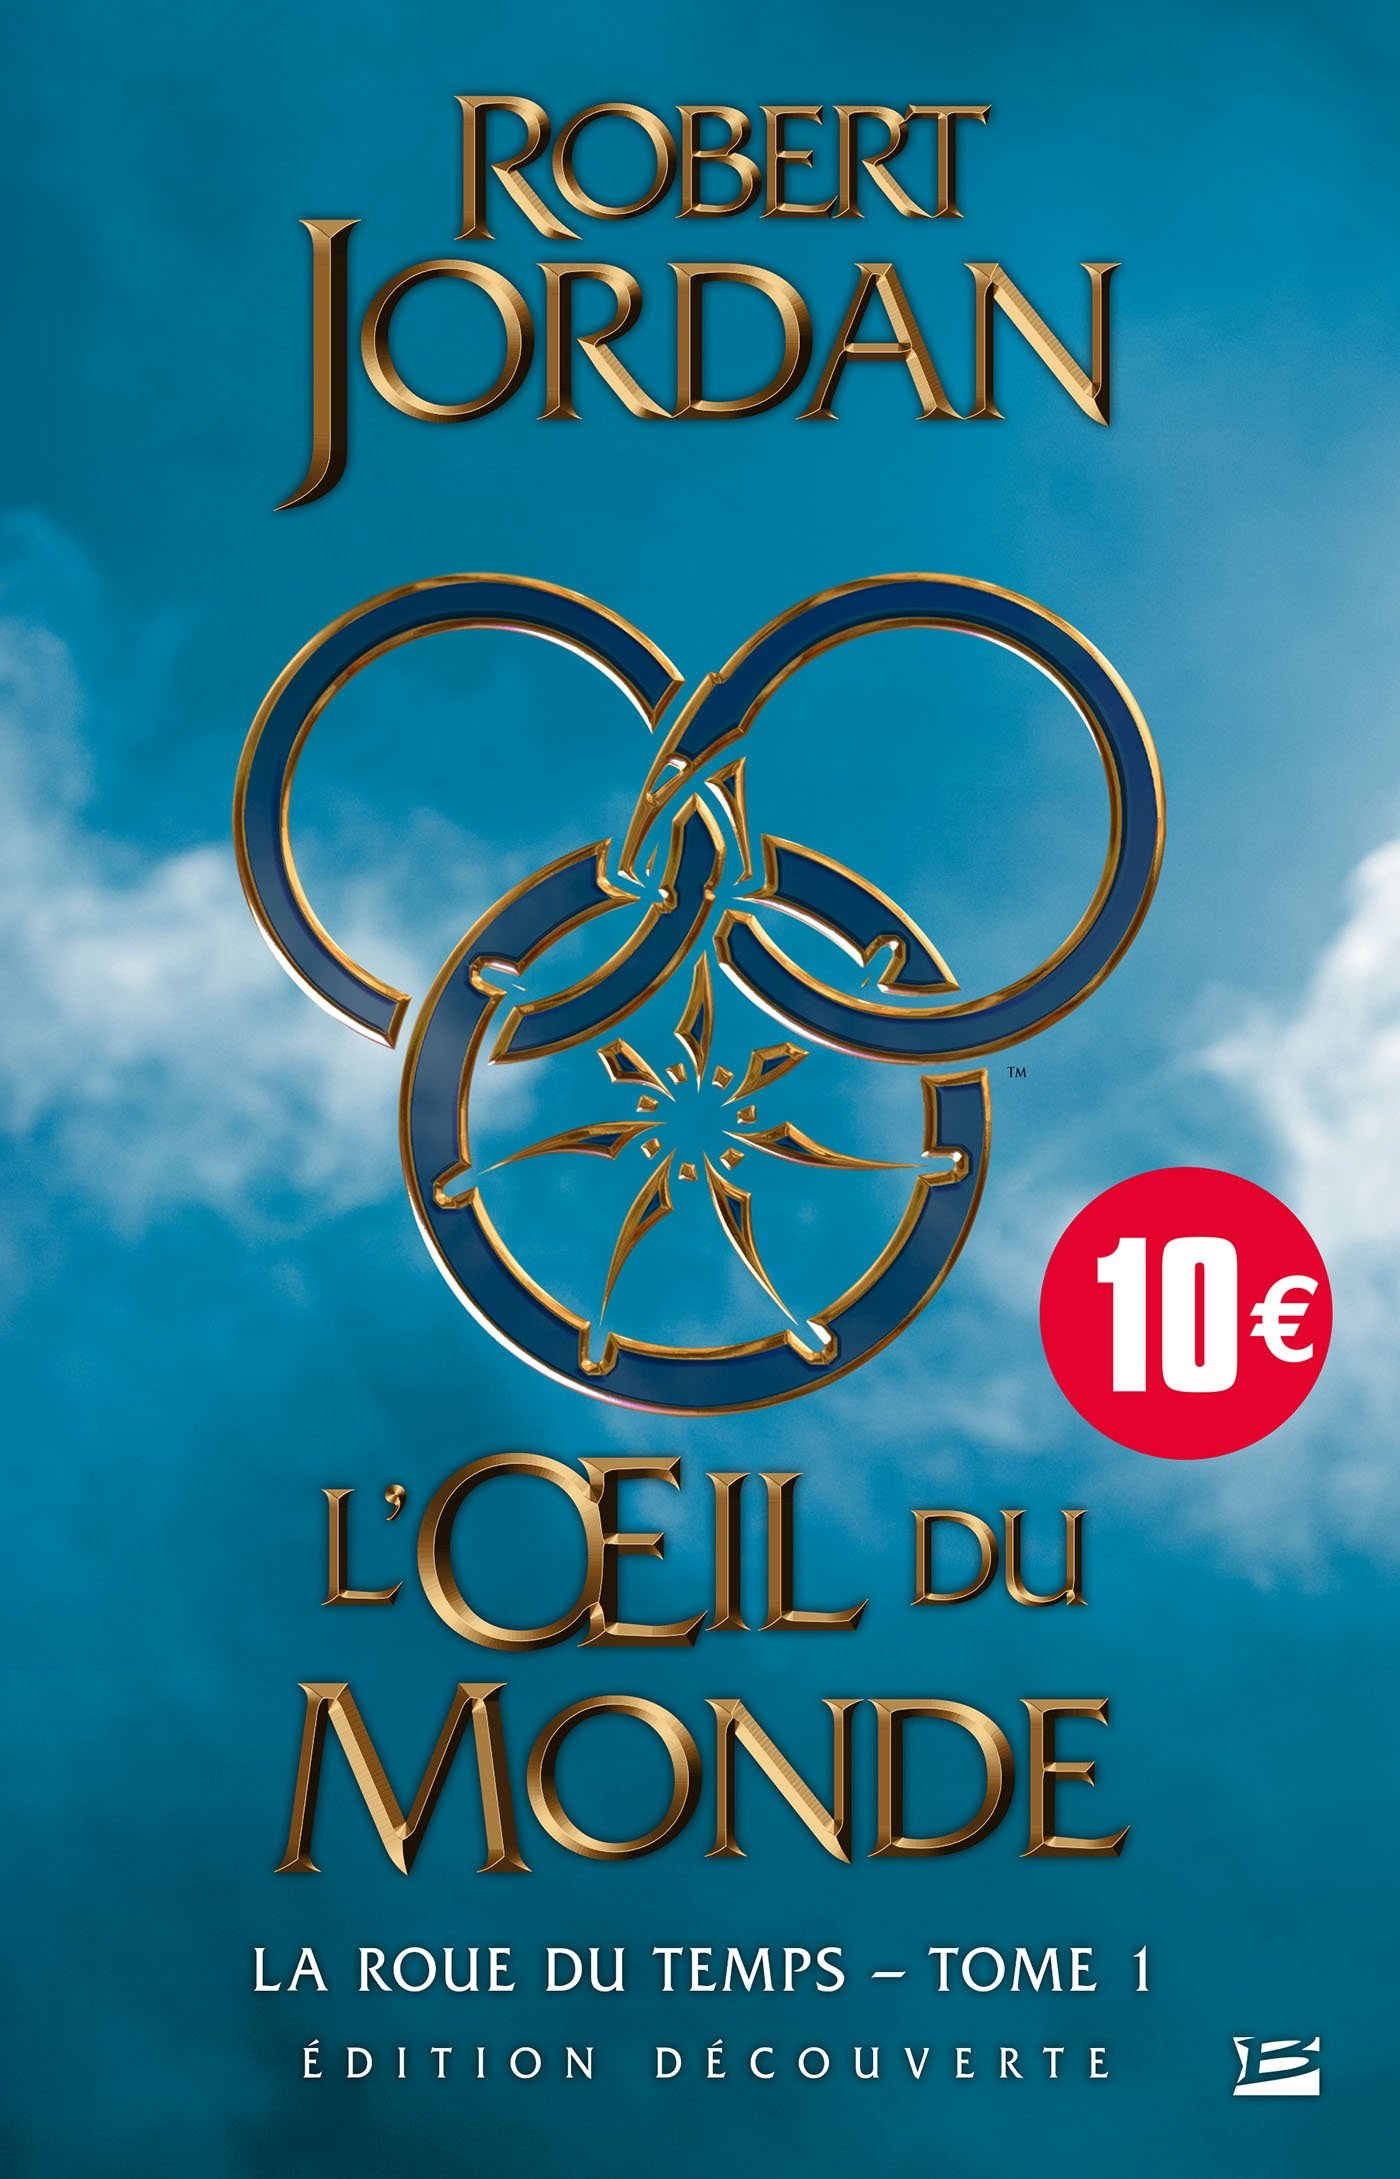 La Roue du Temps – Tome 1 – L'Oeil du Monde / The Wheel of Time